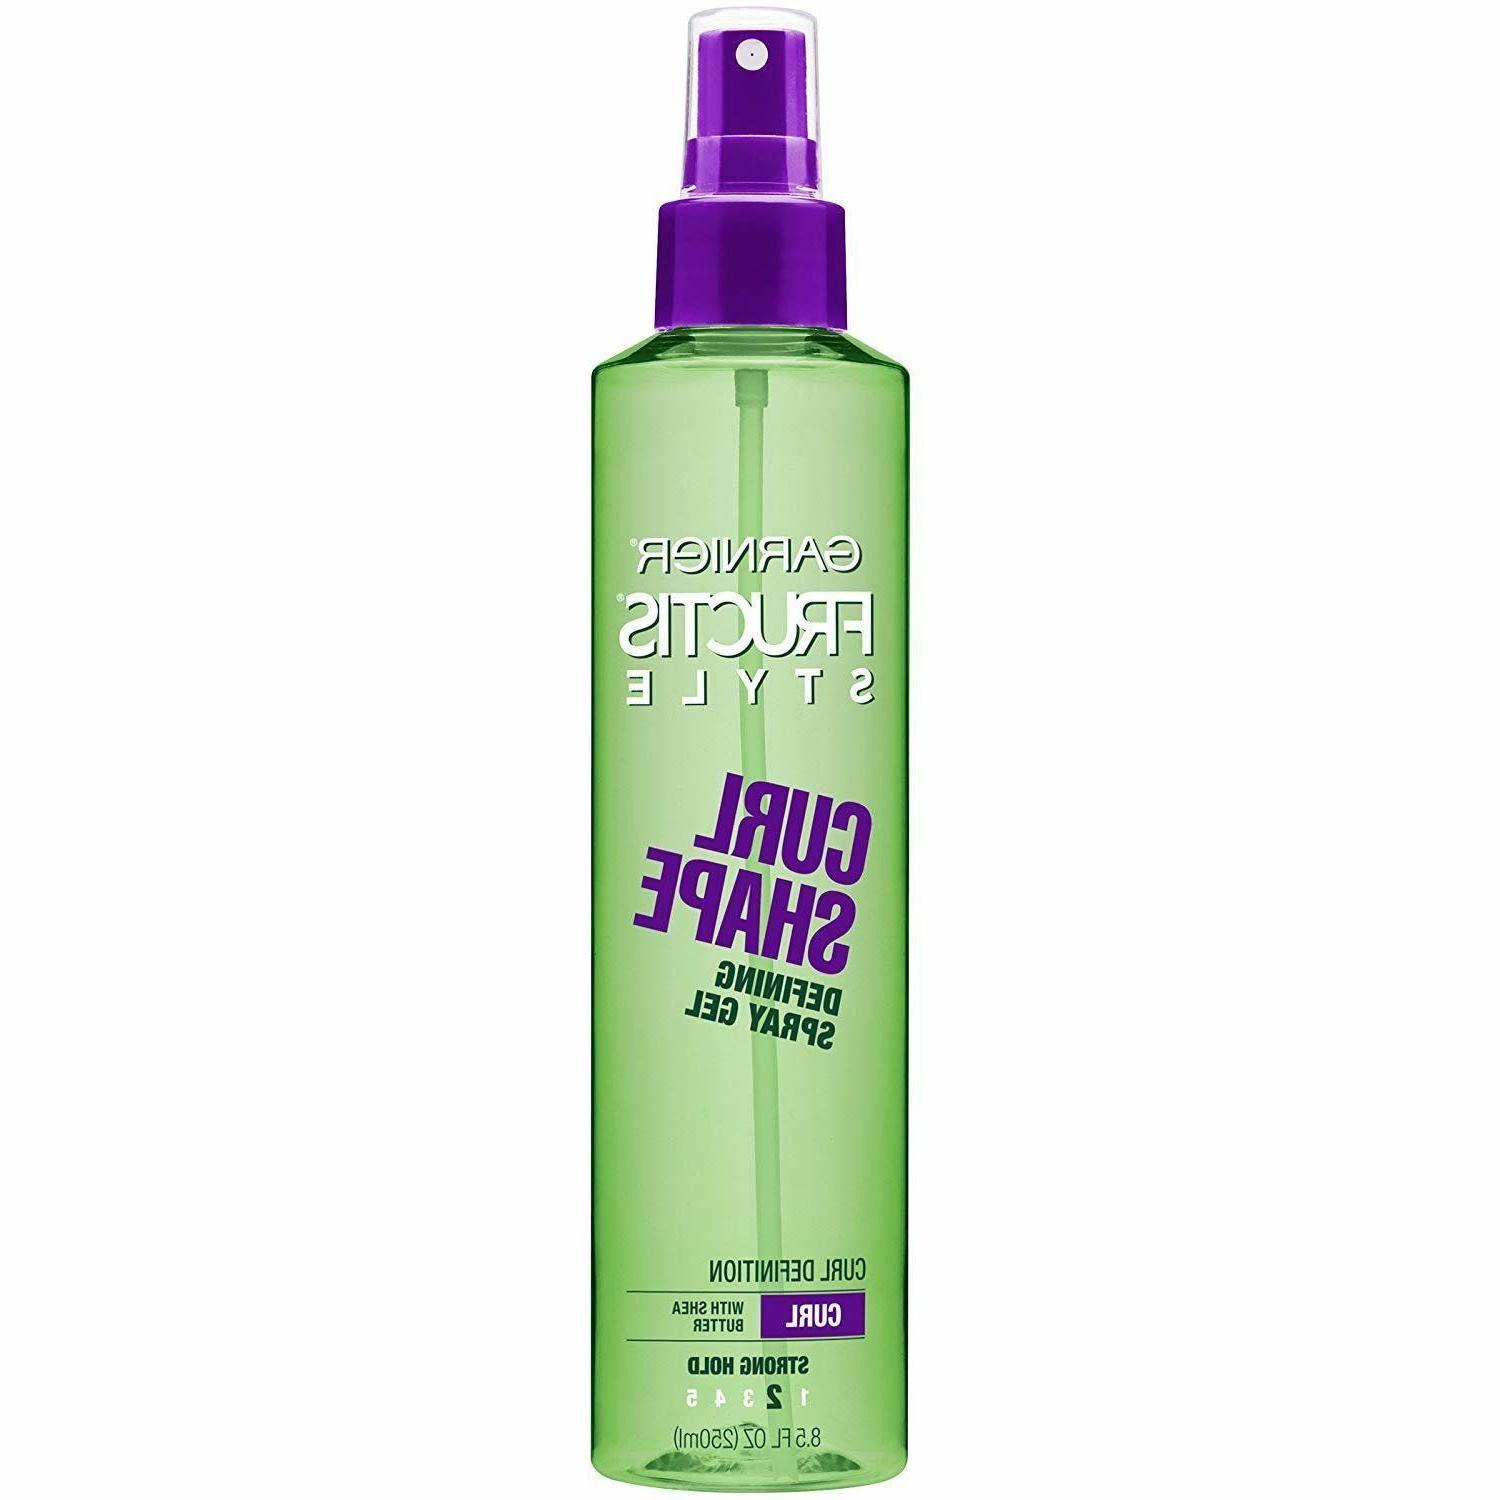 Garnier Fructis Style Curl Shape Defining Spray Gel, Curly H